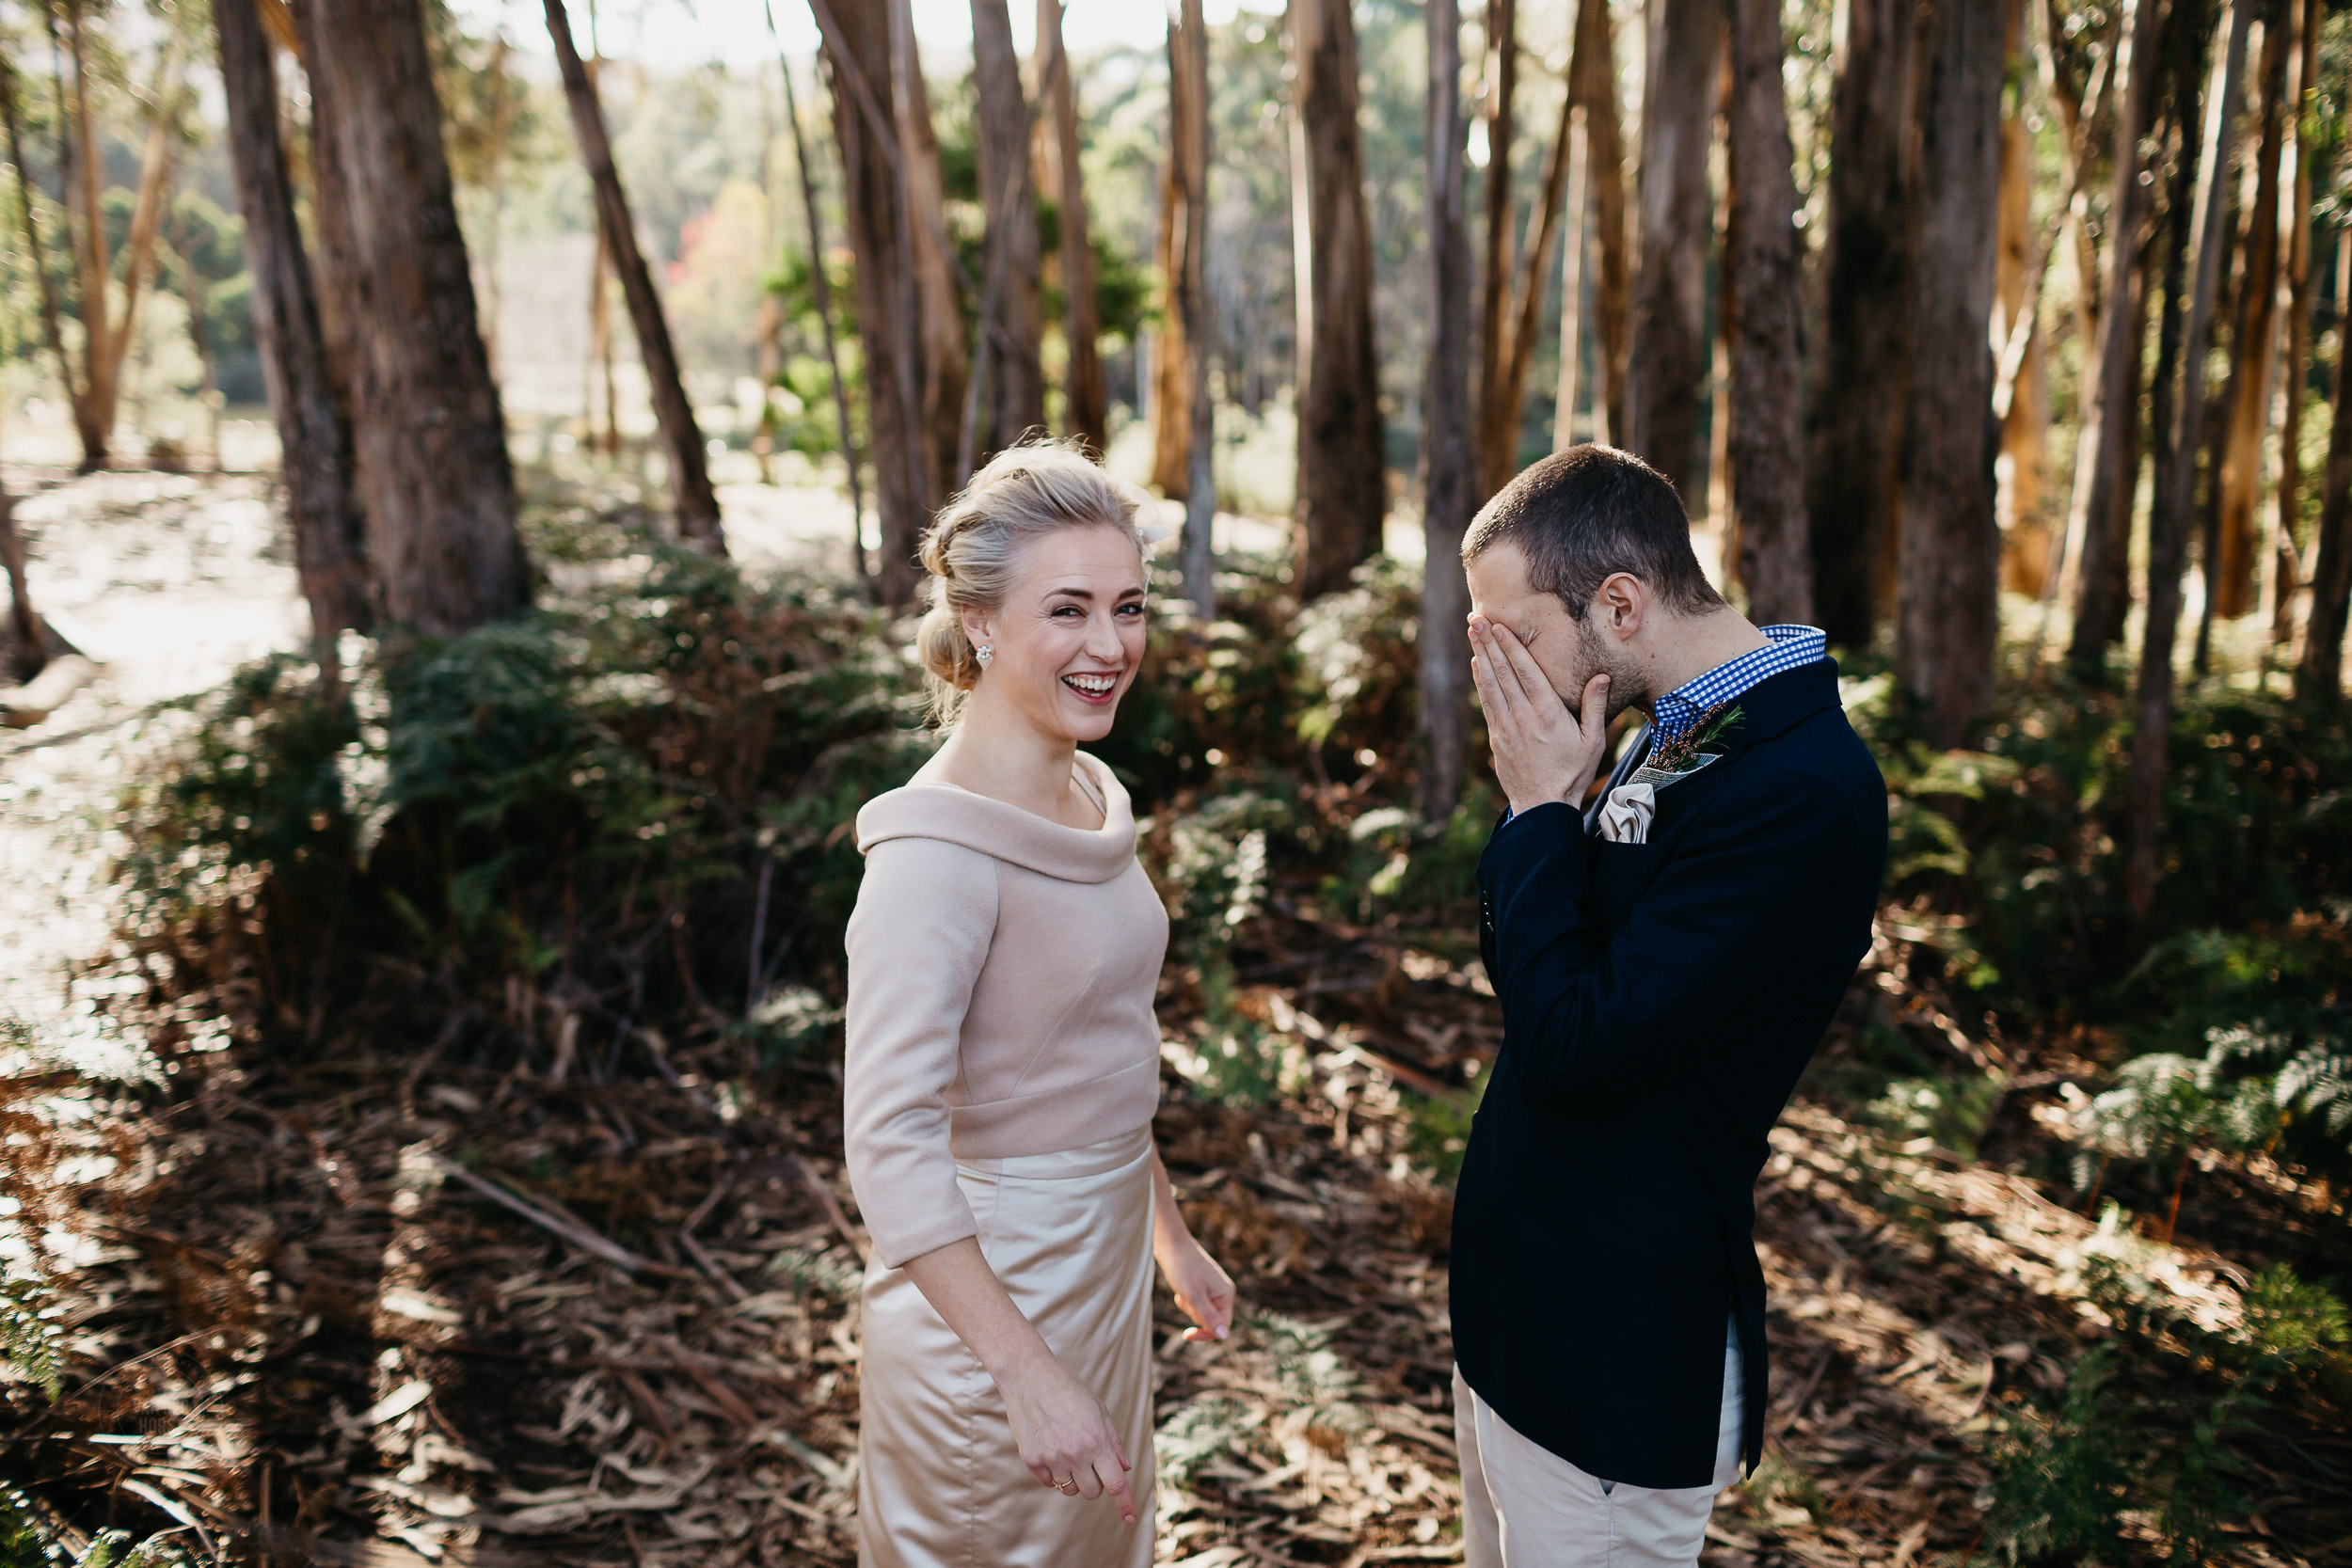 Melbourne-Wedding-Photographer-1029.jpg